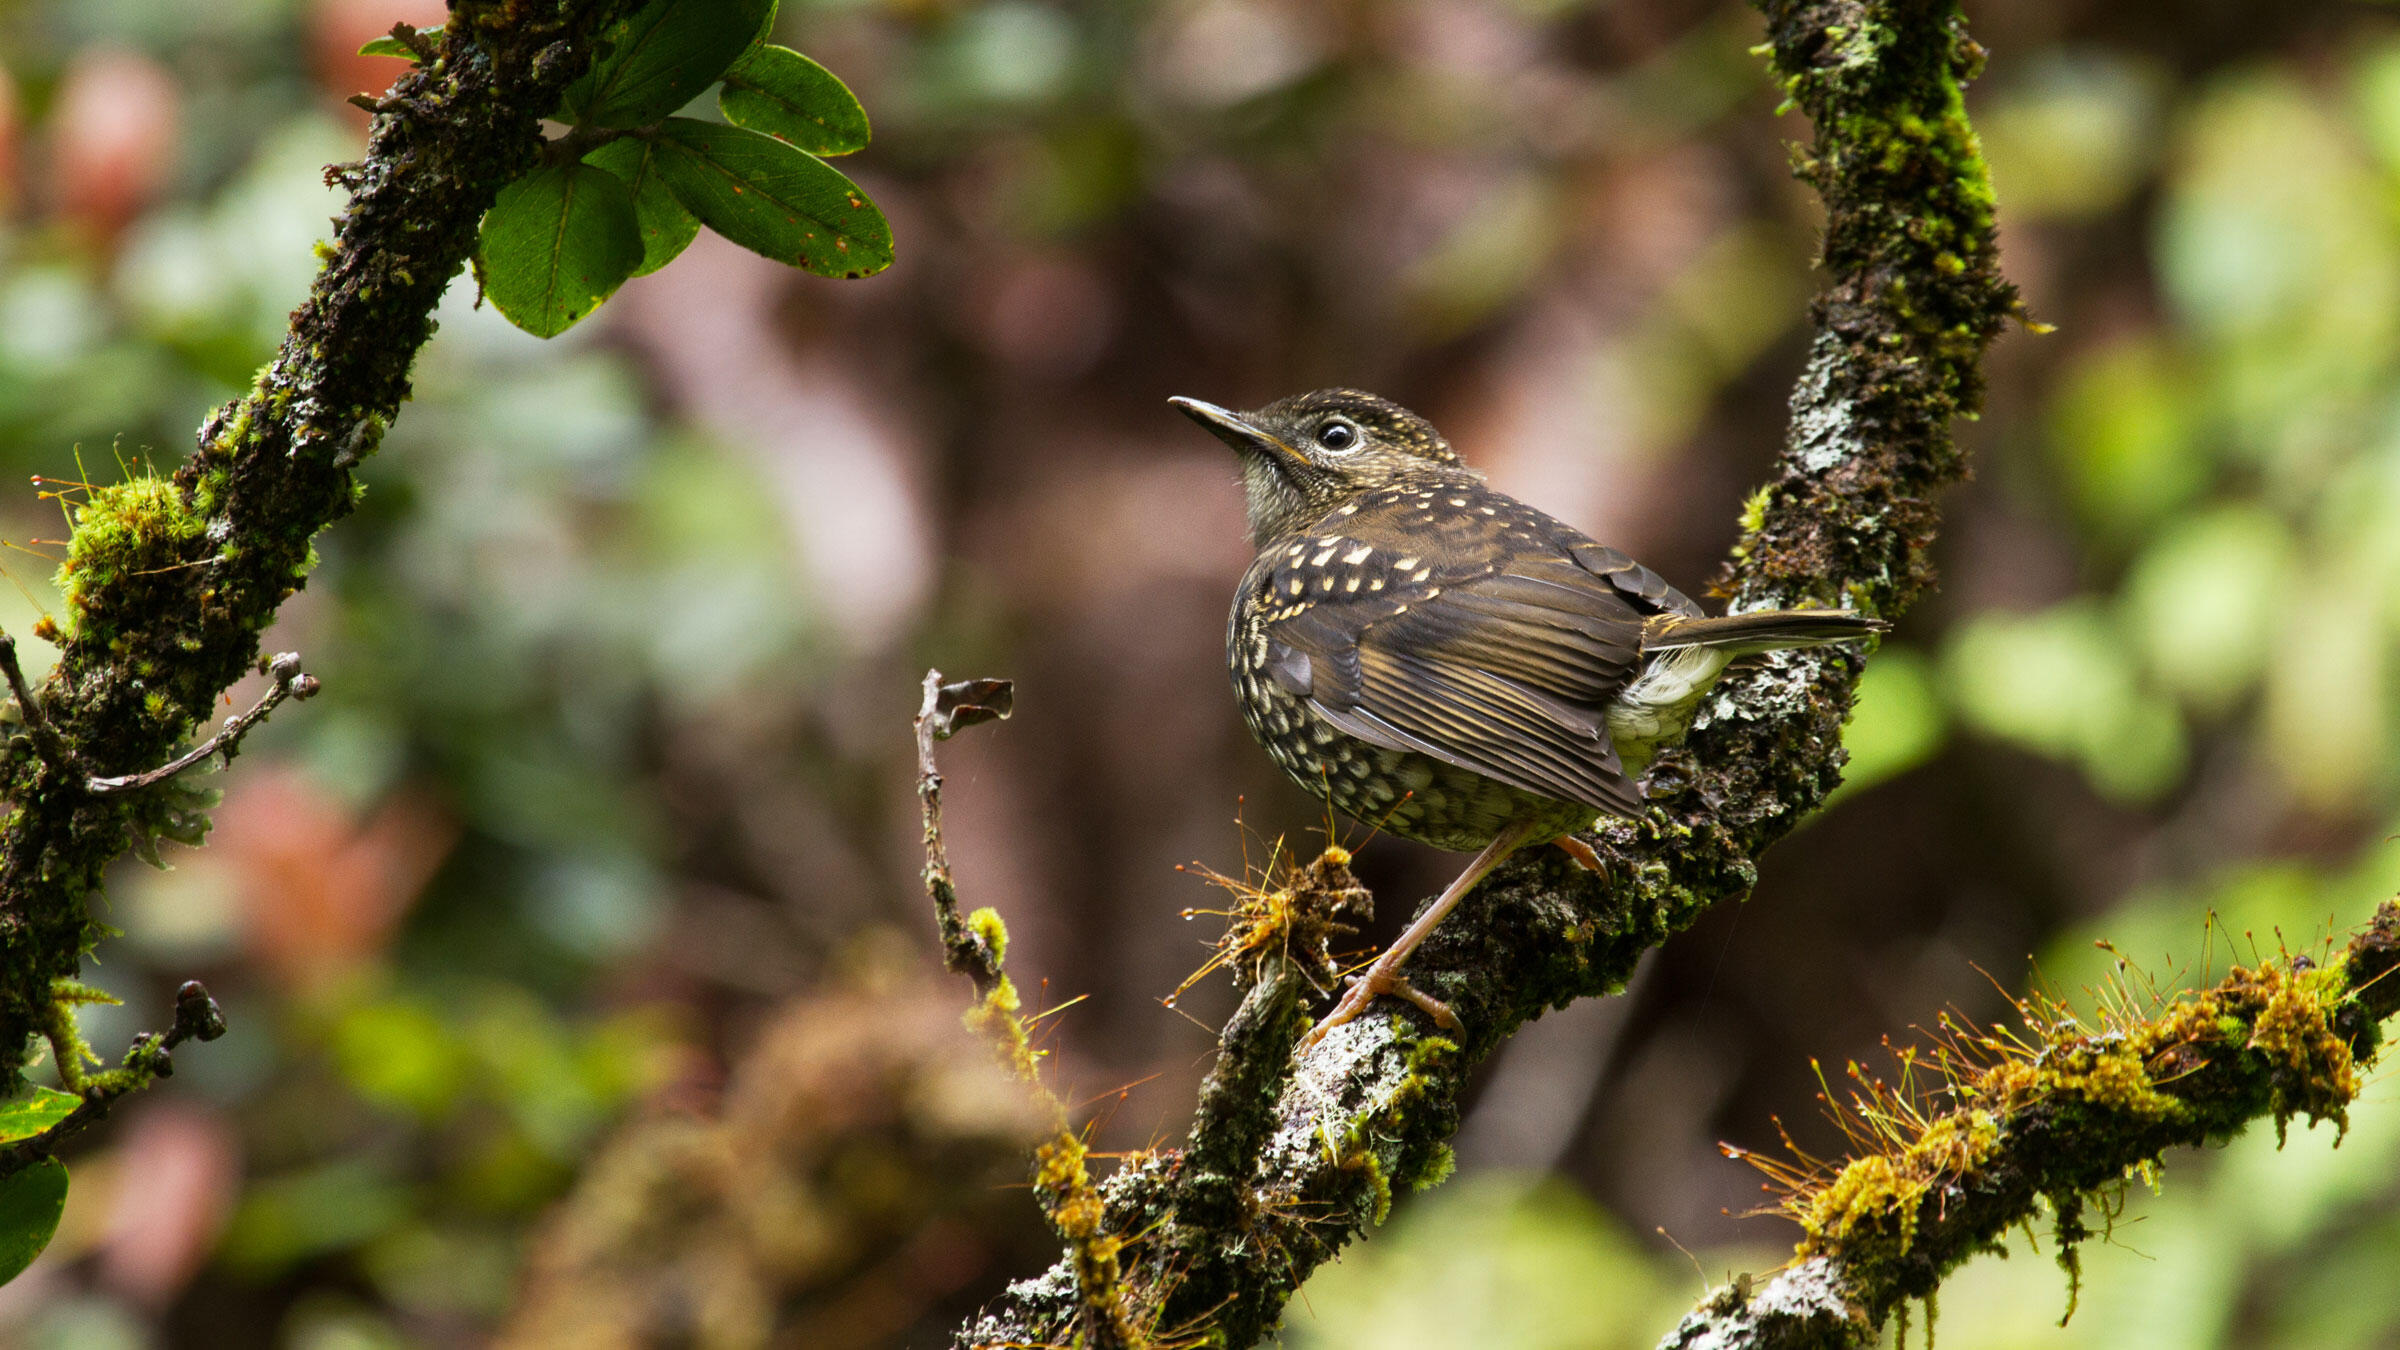 The Puaiohi, a critically endangered thrush found on Kauai, could lose all of its habitat by the end of the century, a new study shows. Robby Kohley